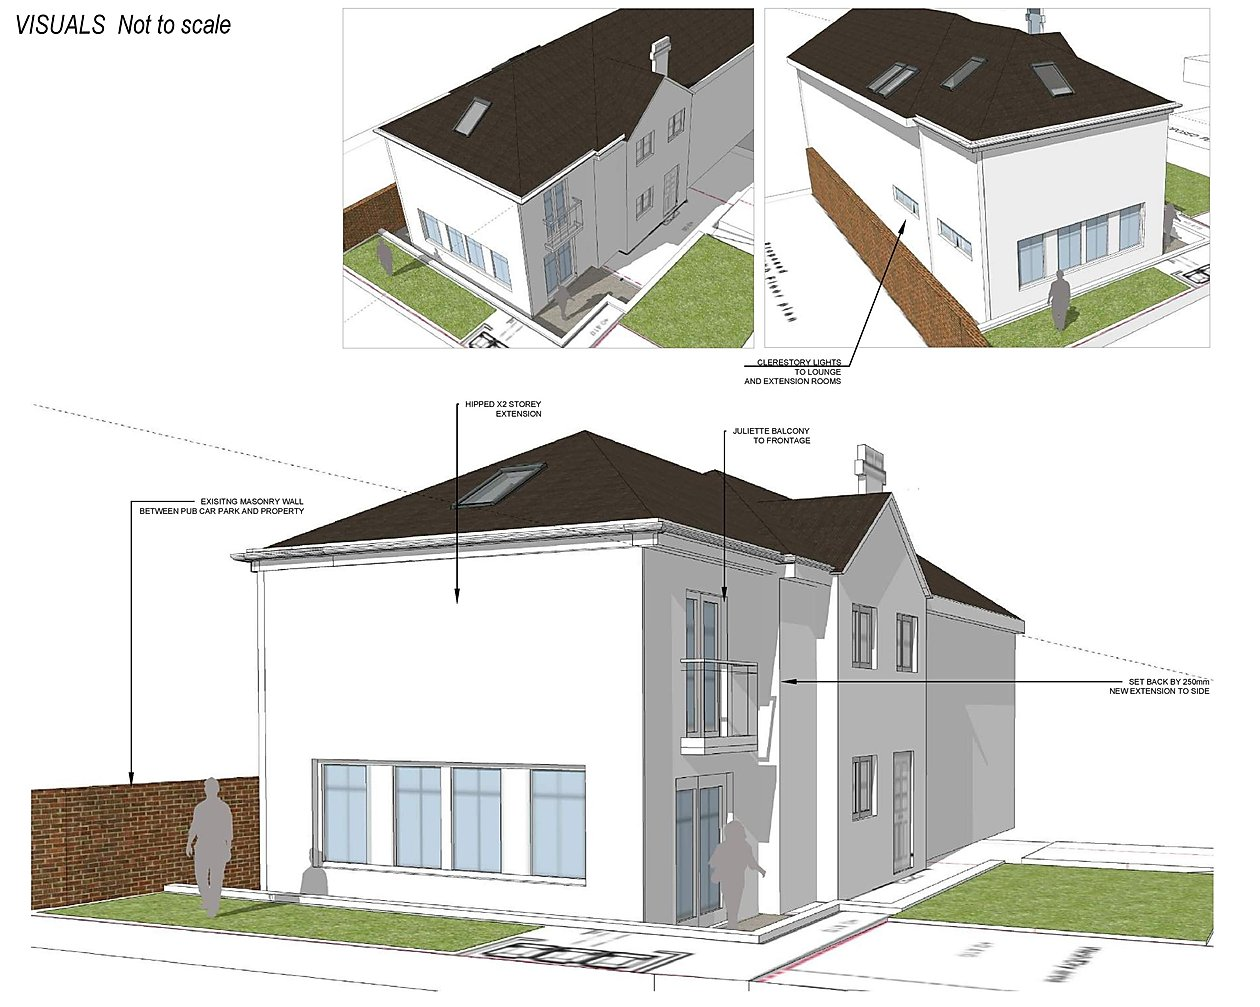 2 storey side extension to dwelling, rendered frontage